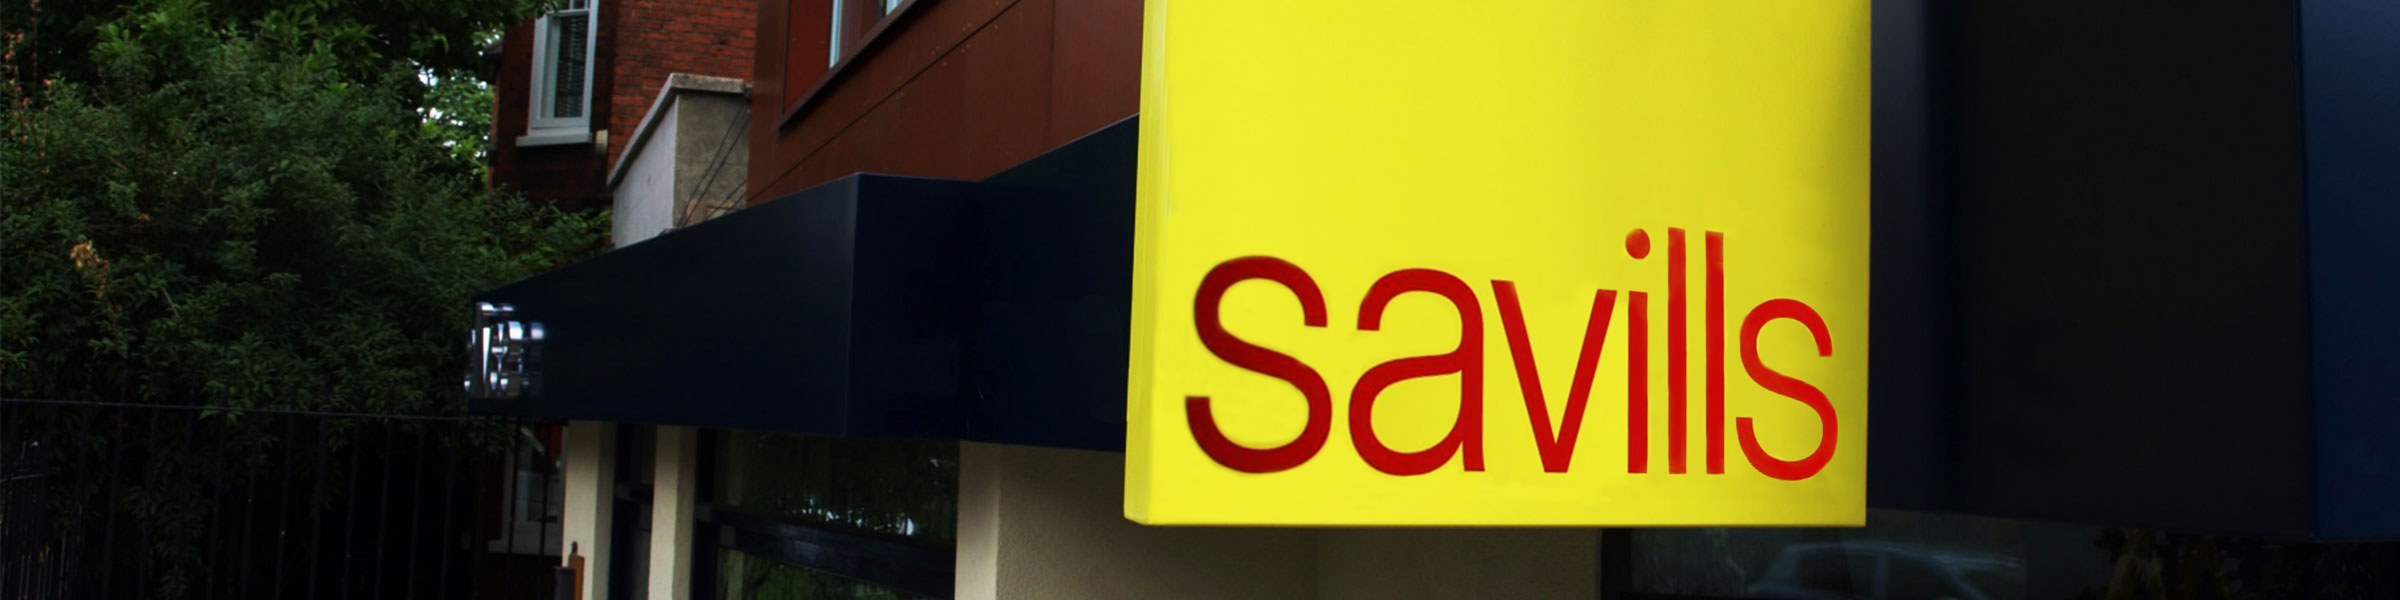 We are now working with Savills in the UK